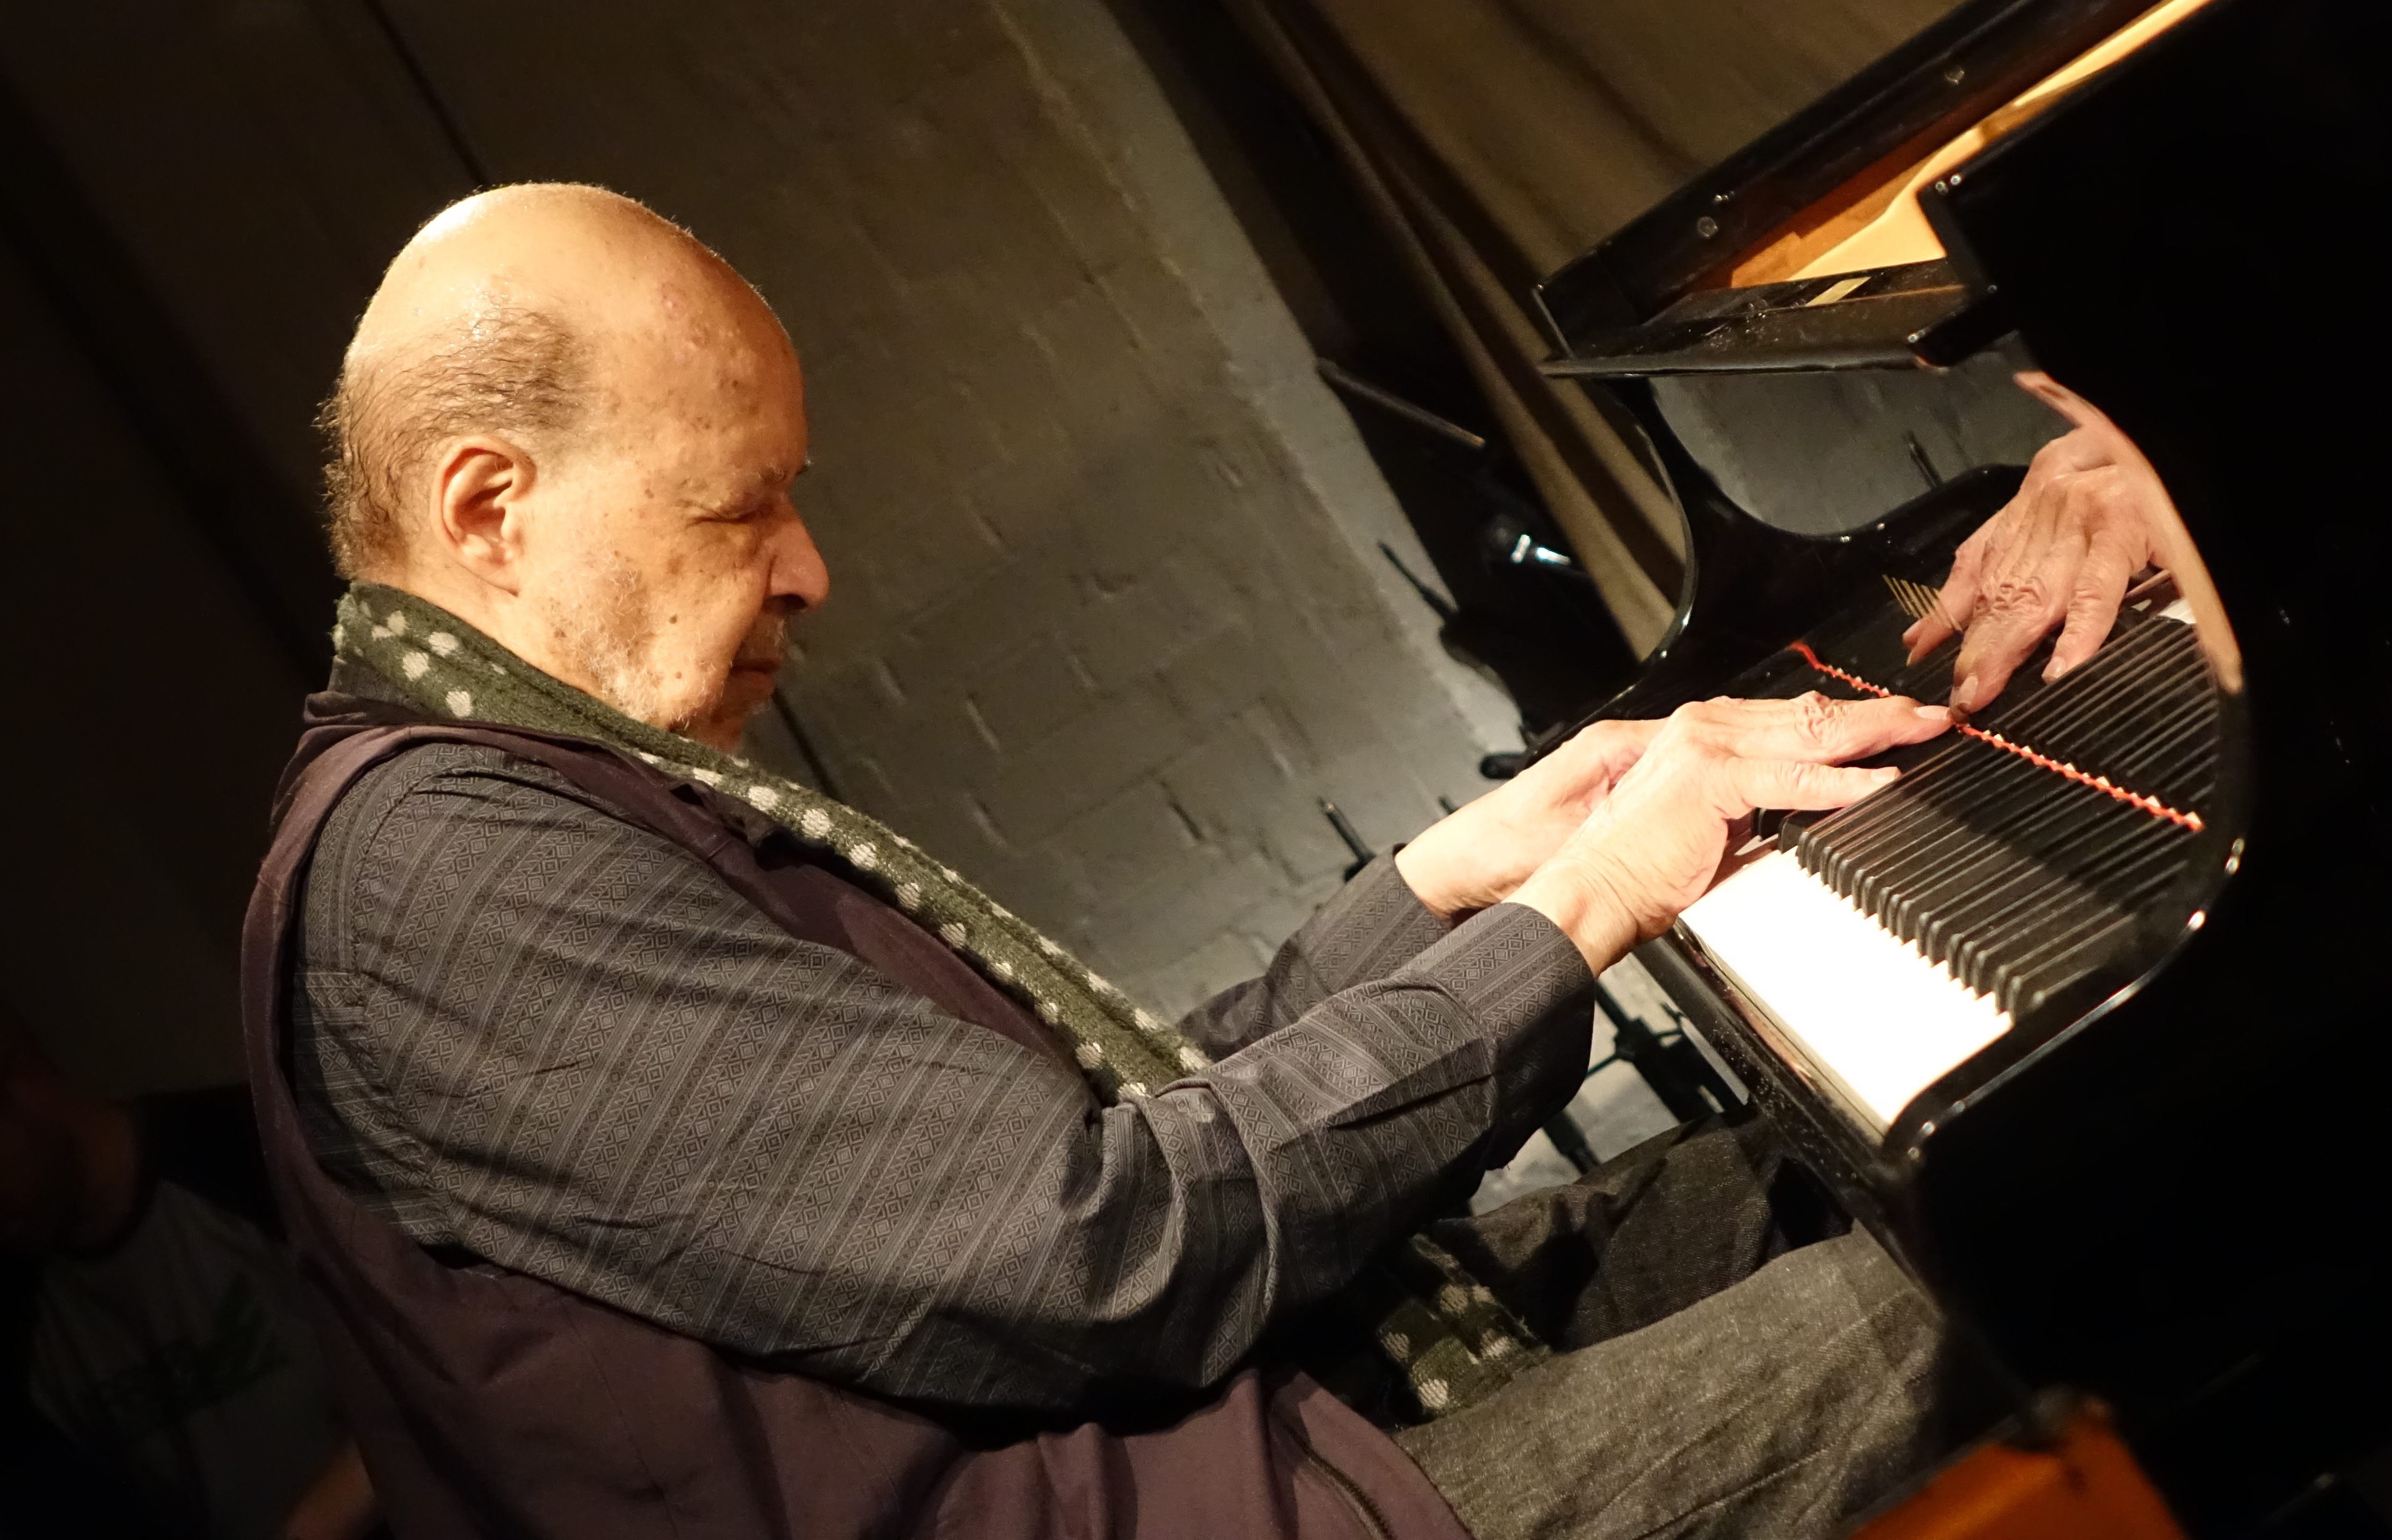 Dave Burrell at Cafe Oto, London in November 2018